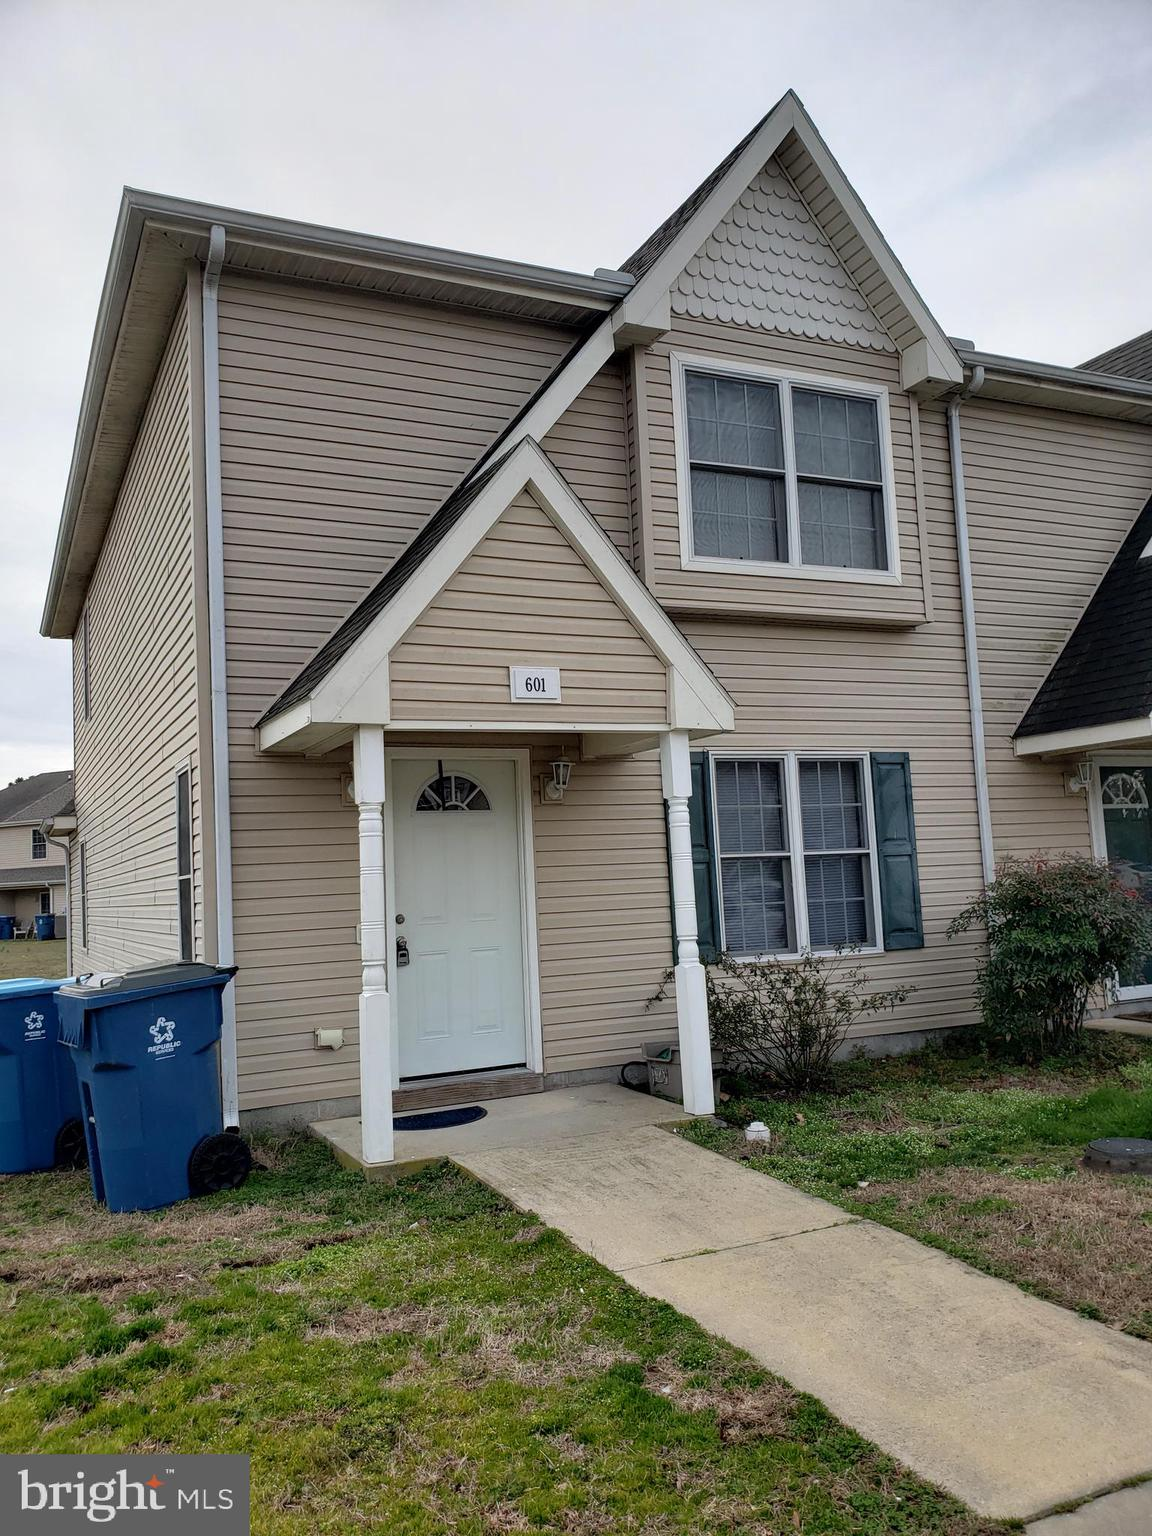 Don's miss this 3 BD / 2.5 BA two story townhome in Townes At Laurel Court.  End unit townhome.  Features wood laminate in living room with slider to back yard, 1st floor washer /dryer.  2nd floor is Master bedroom with full bath and two other bedrooms.  Great investment opportunity or for year round living!